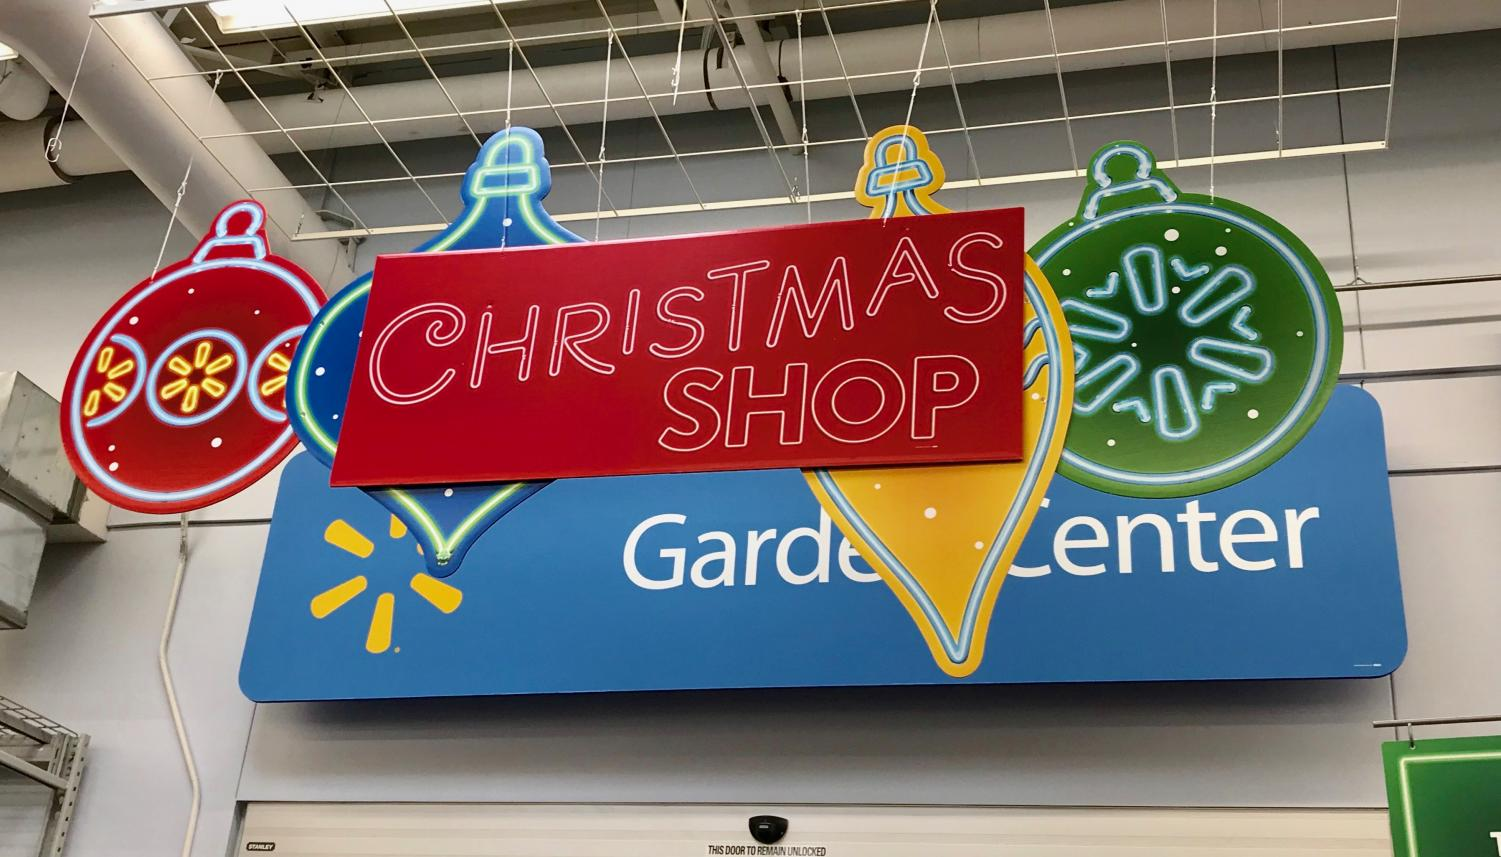 By mid-October, the Walmart located in Baden had already dedicated its garden center to the Christmas Shop for the season.